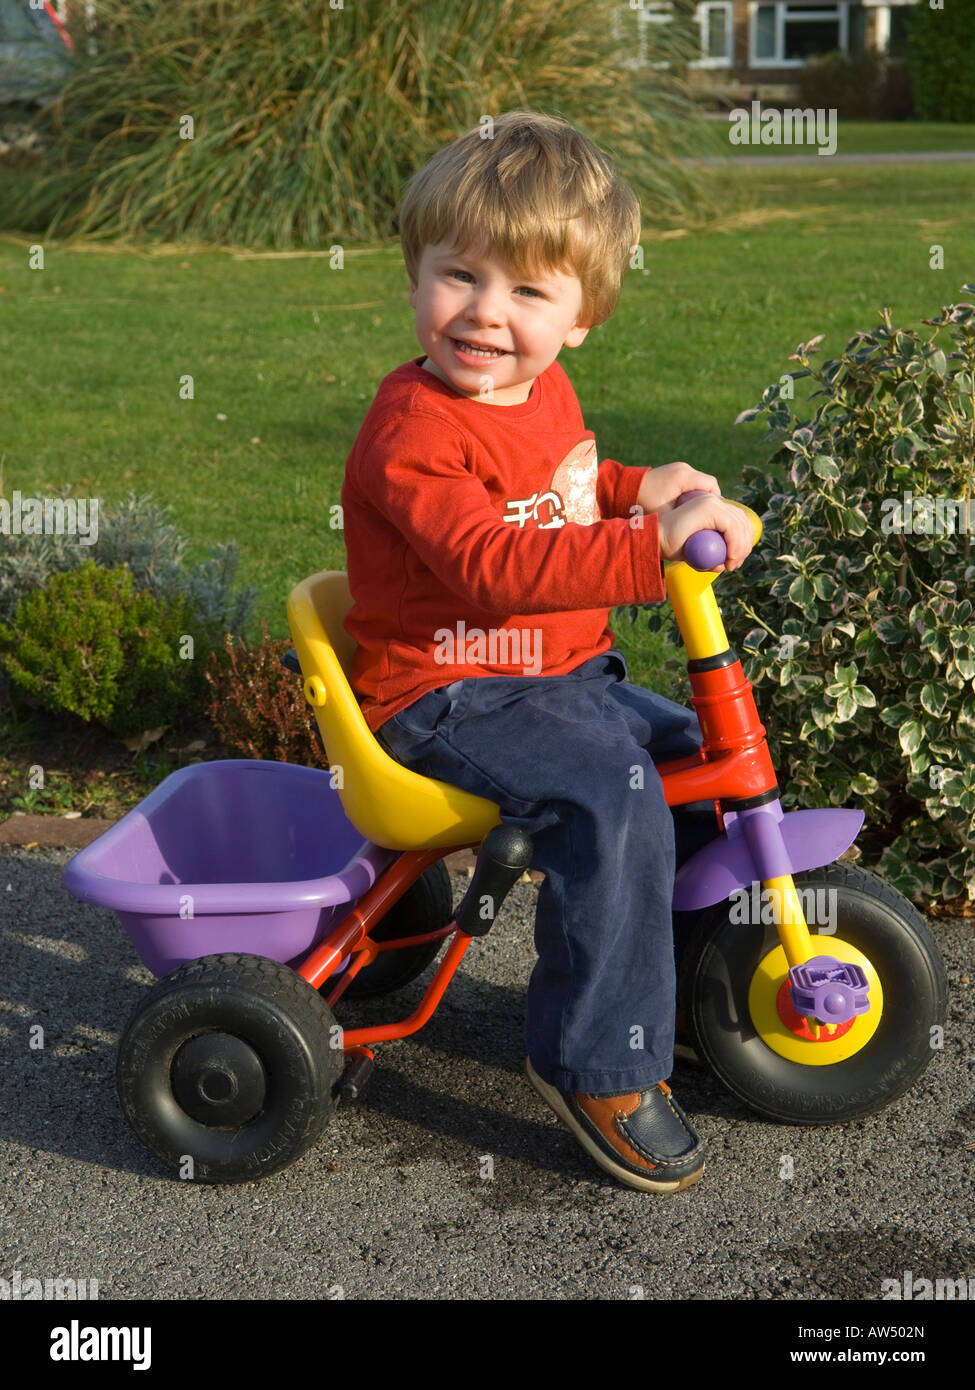 Two Year Old Boy Riding Small Bike In A Drive Stock Photo 16467164